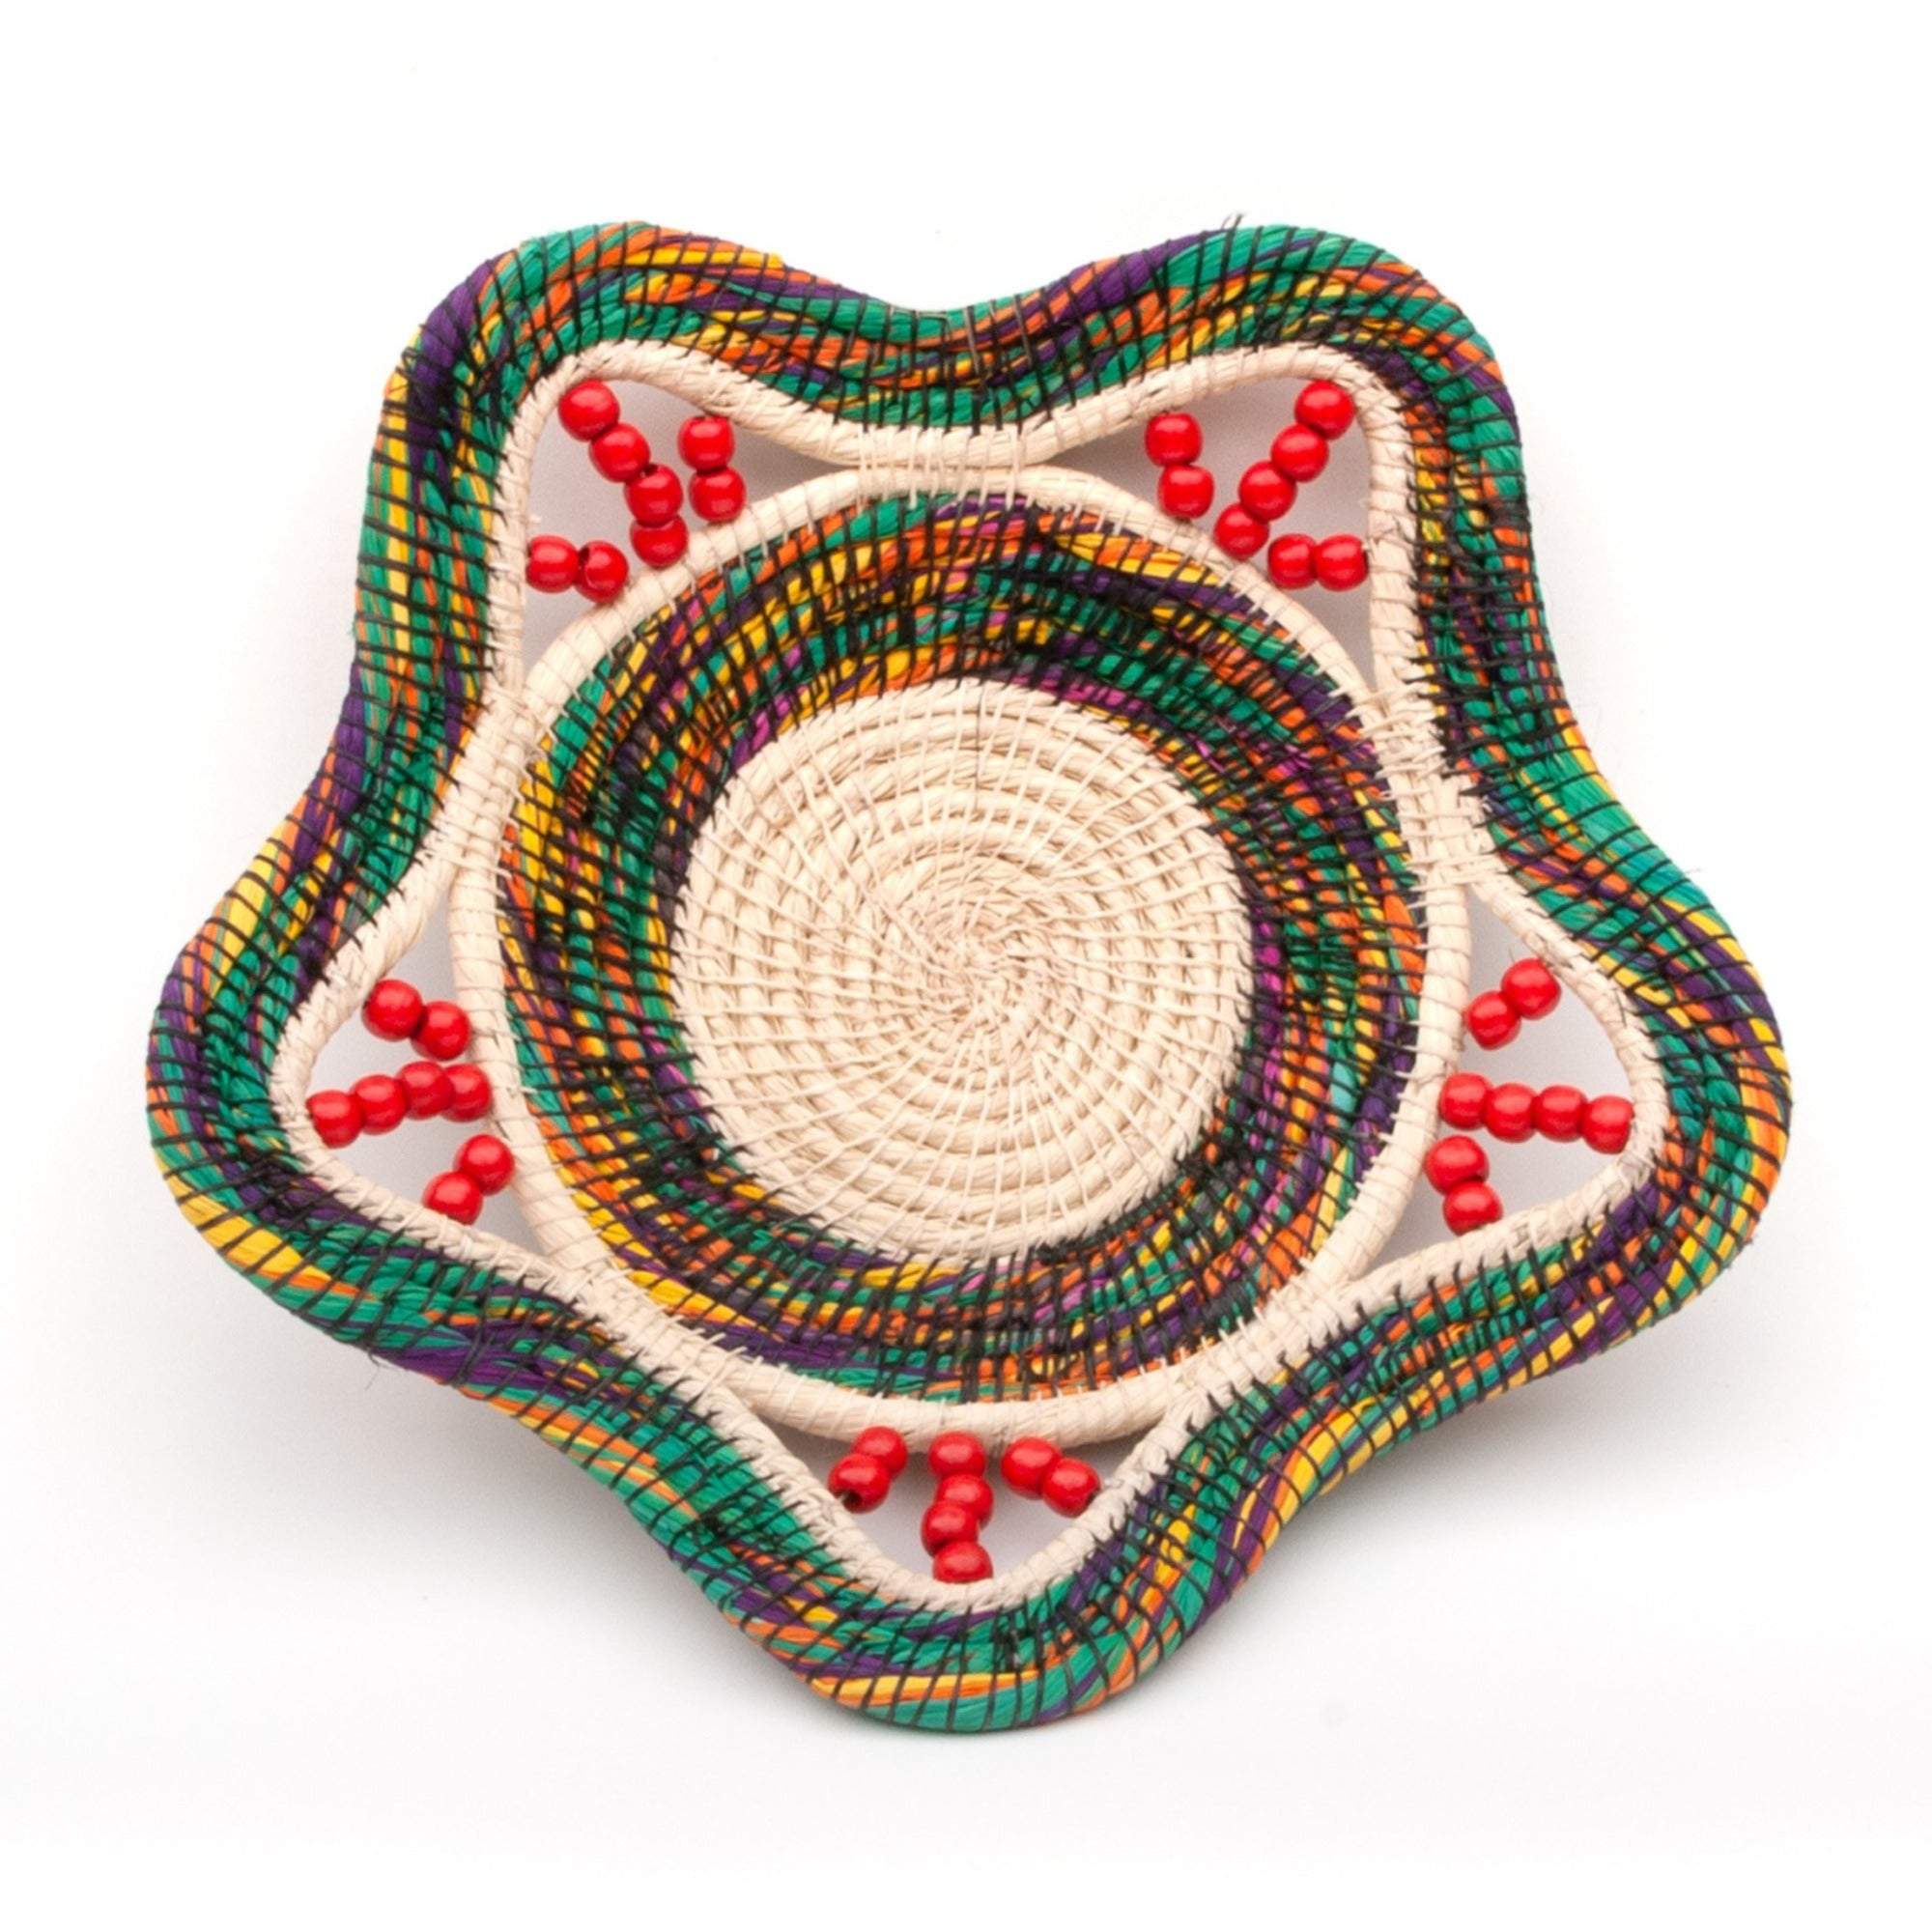 Beautiful Multi-Colored Handwoven Basket- Fair Trade